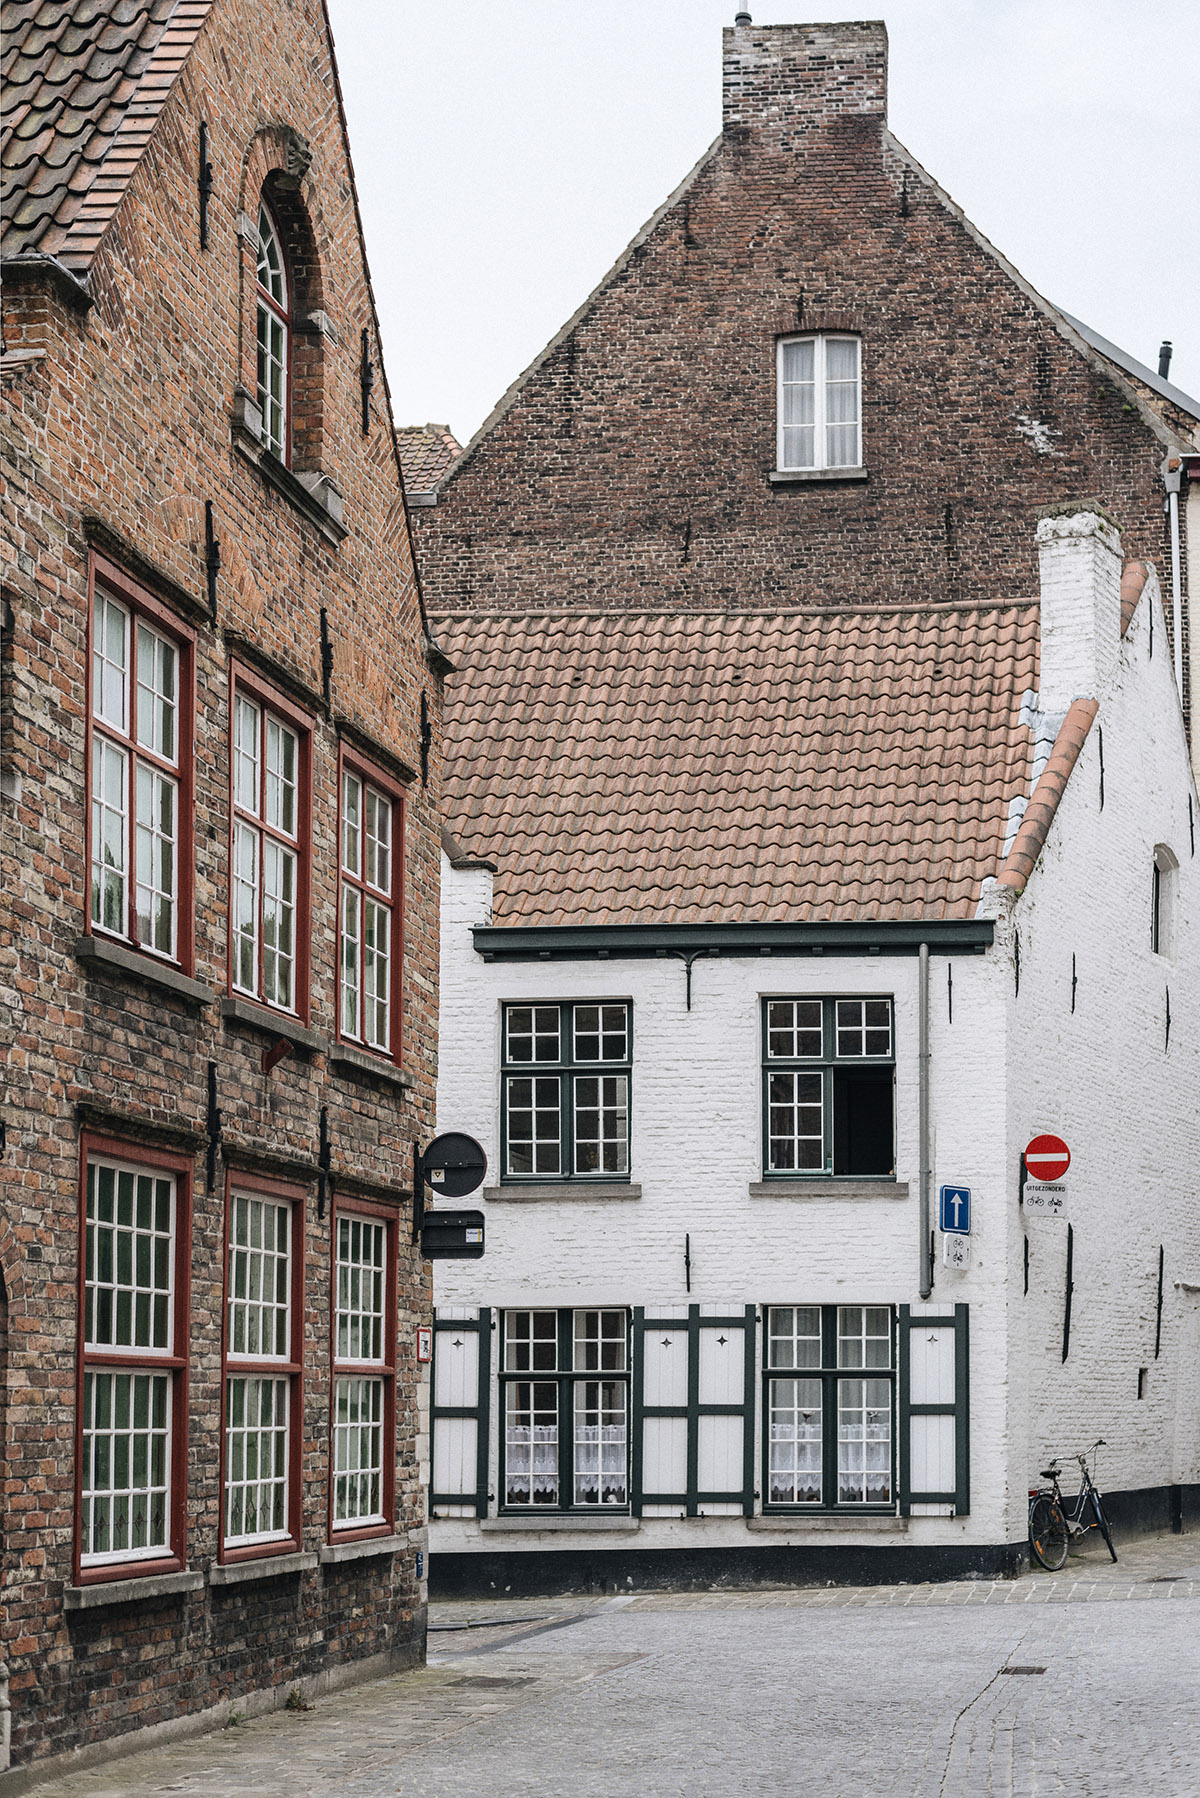 Bruges houses - Patricia Martins Yellowish blog